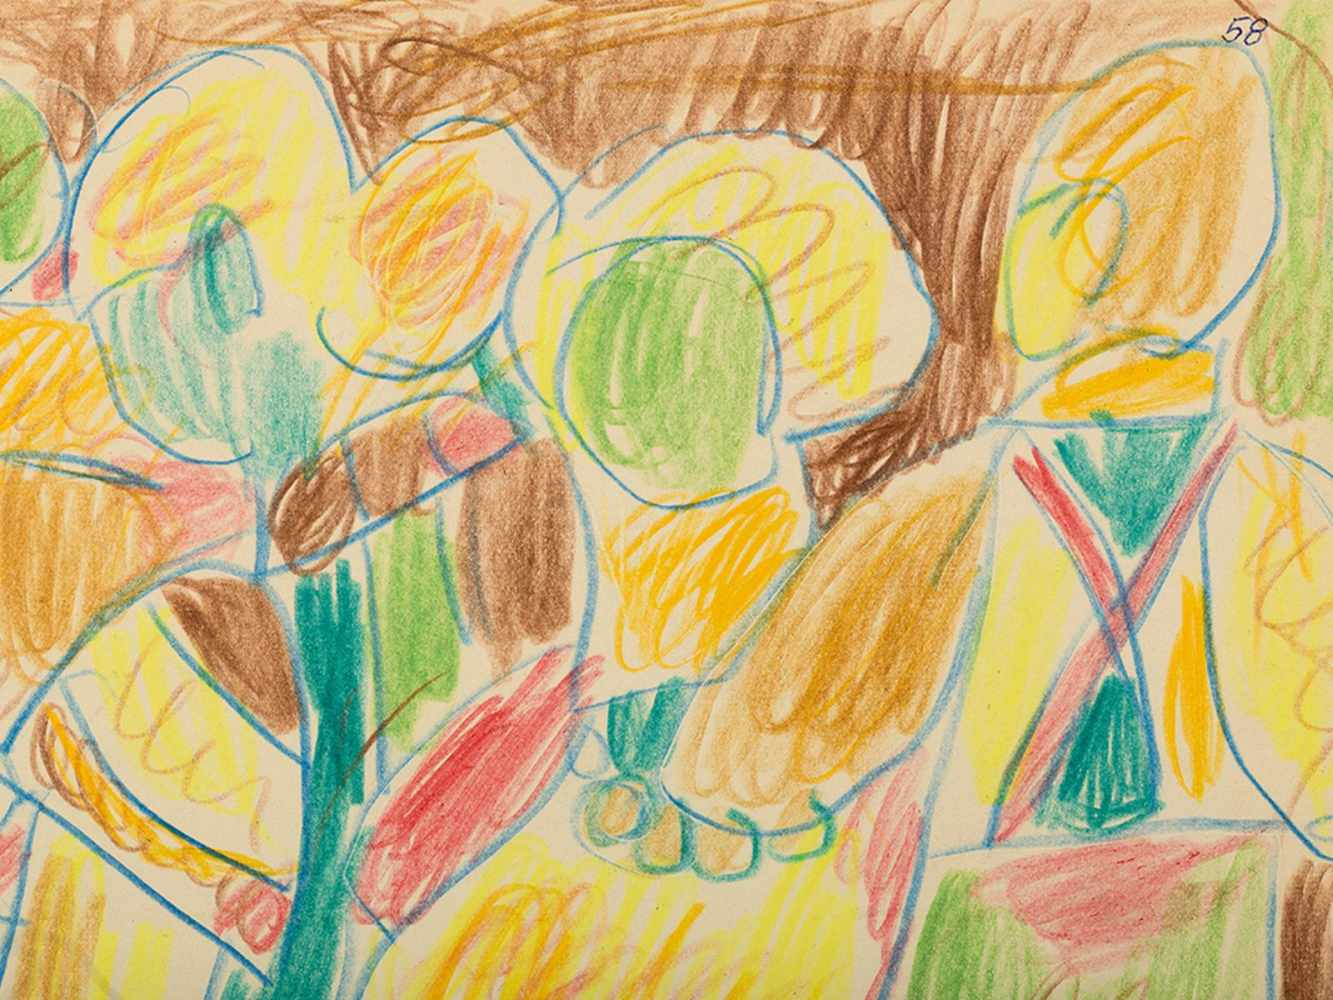 Miklos Németh, Drawing, Colorful Figures, Hungary, 2008< - Image 3 of 7